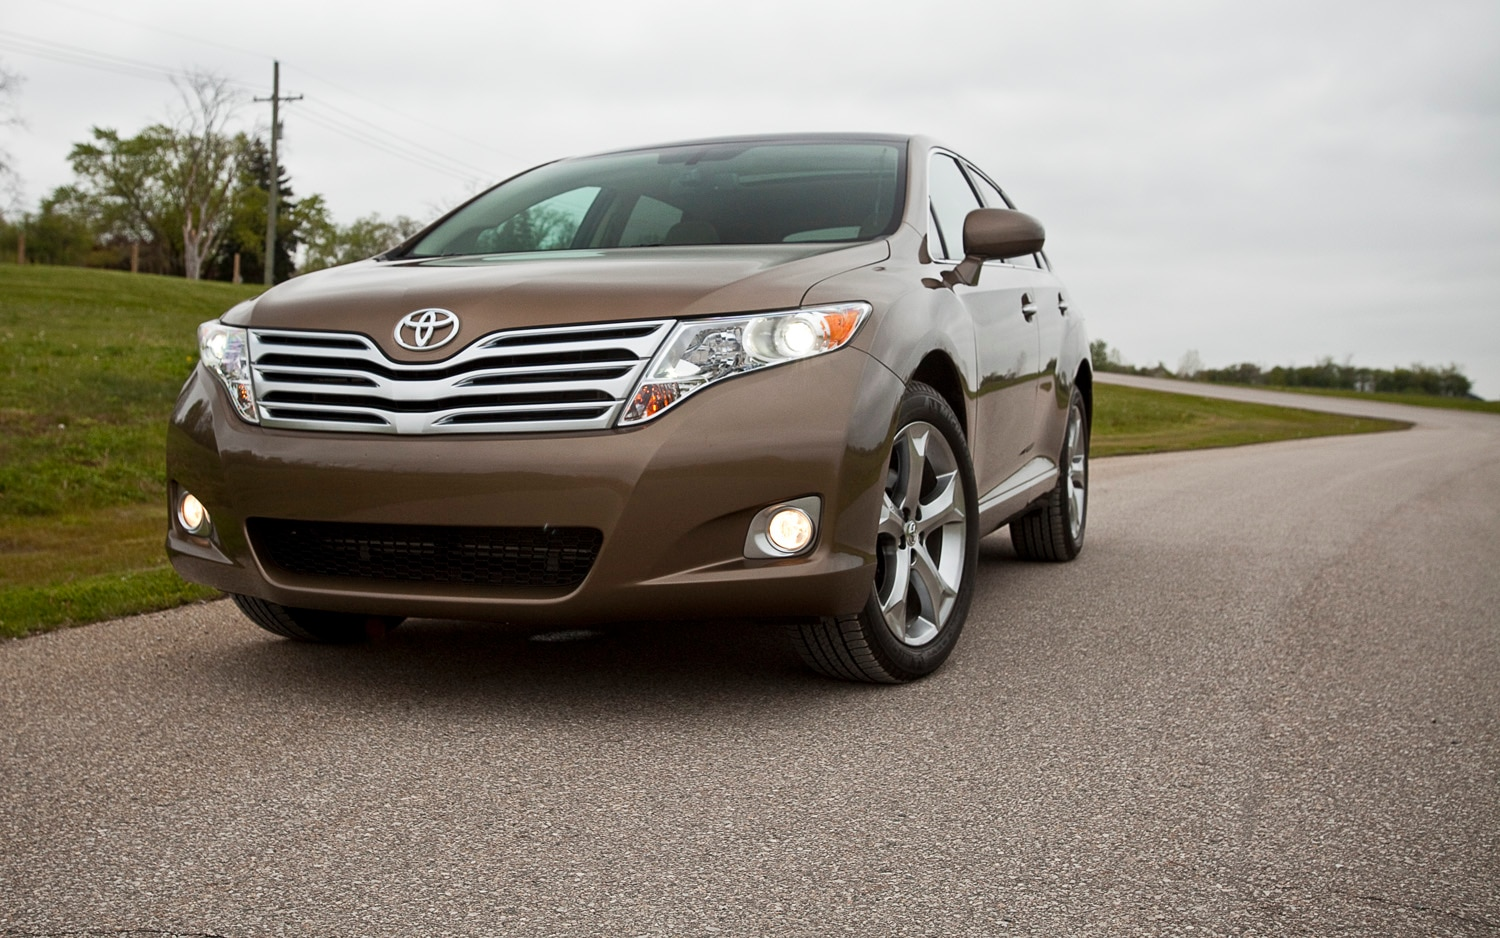 2010 Toyota Venza AWD V6 Stock # 25089 for sale near Alsip ... |Toyota Venza Awd